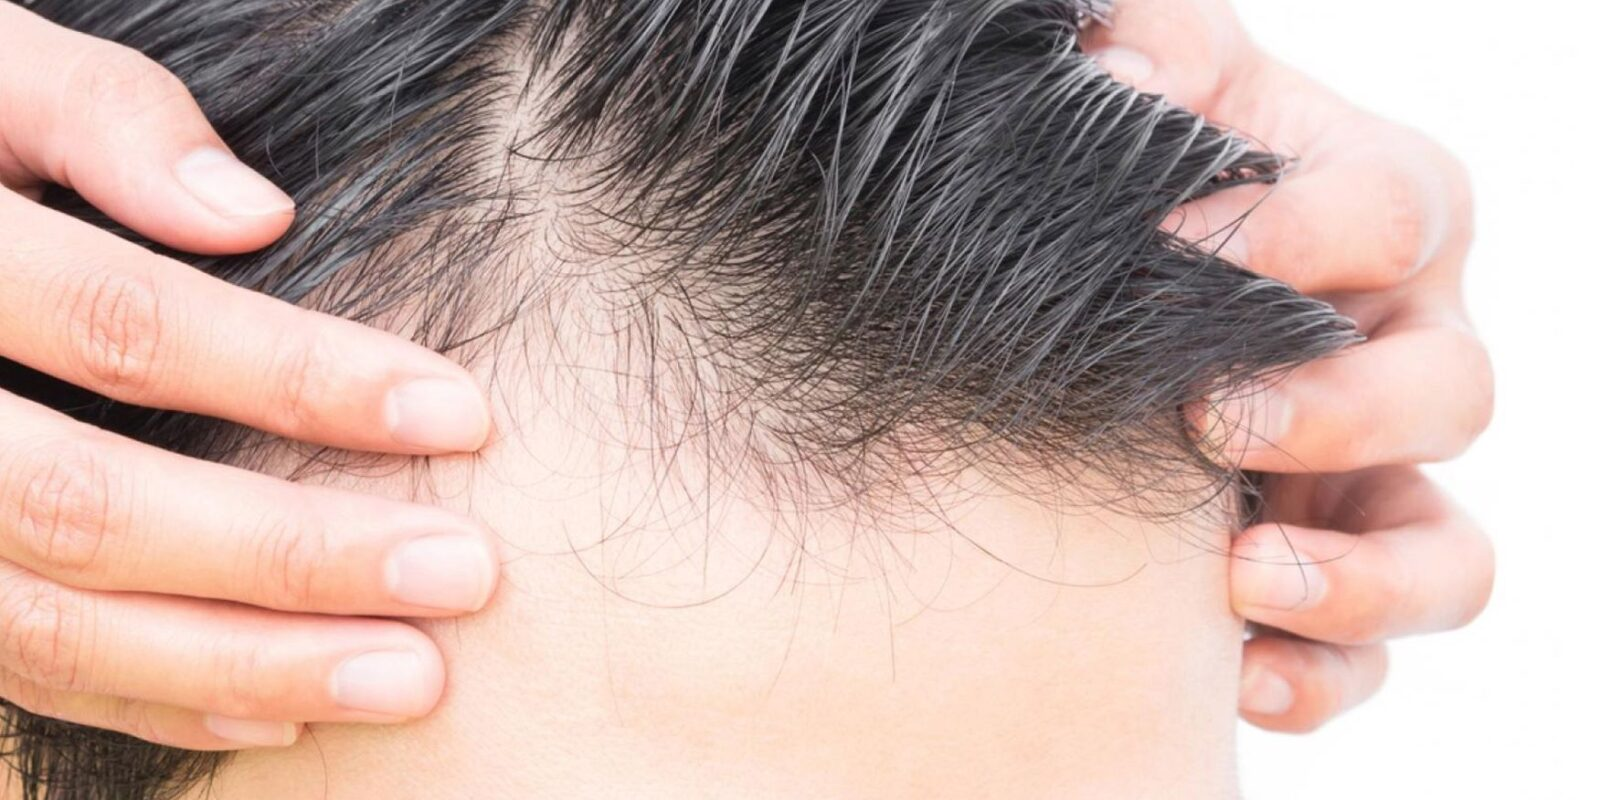 hair loss scalp picture